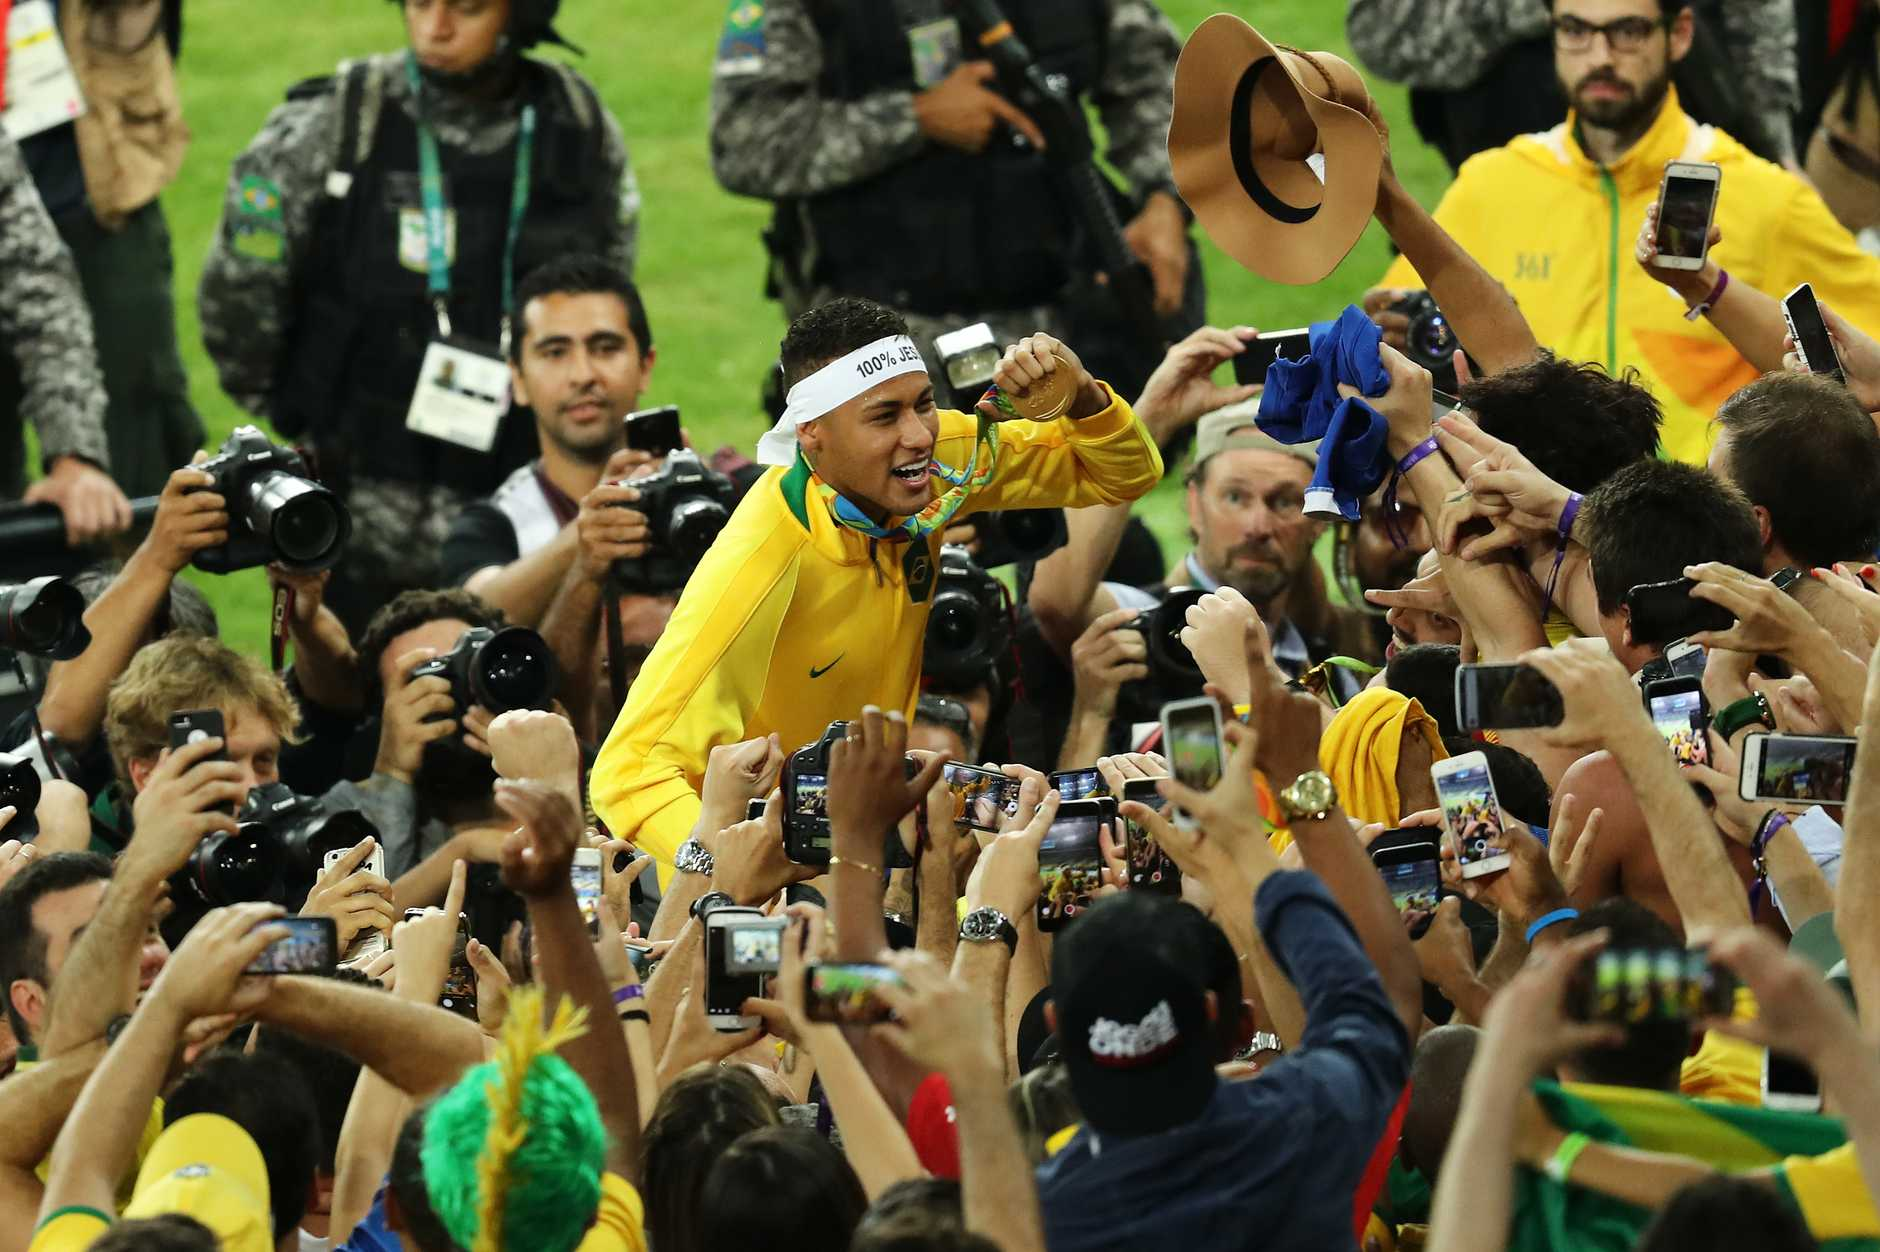 Neymar is swamped by media and fan after clinching the gold medal for his country.